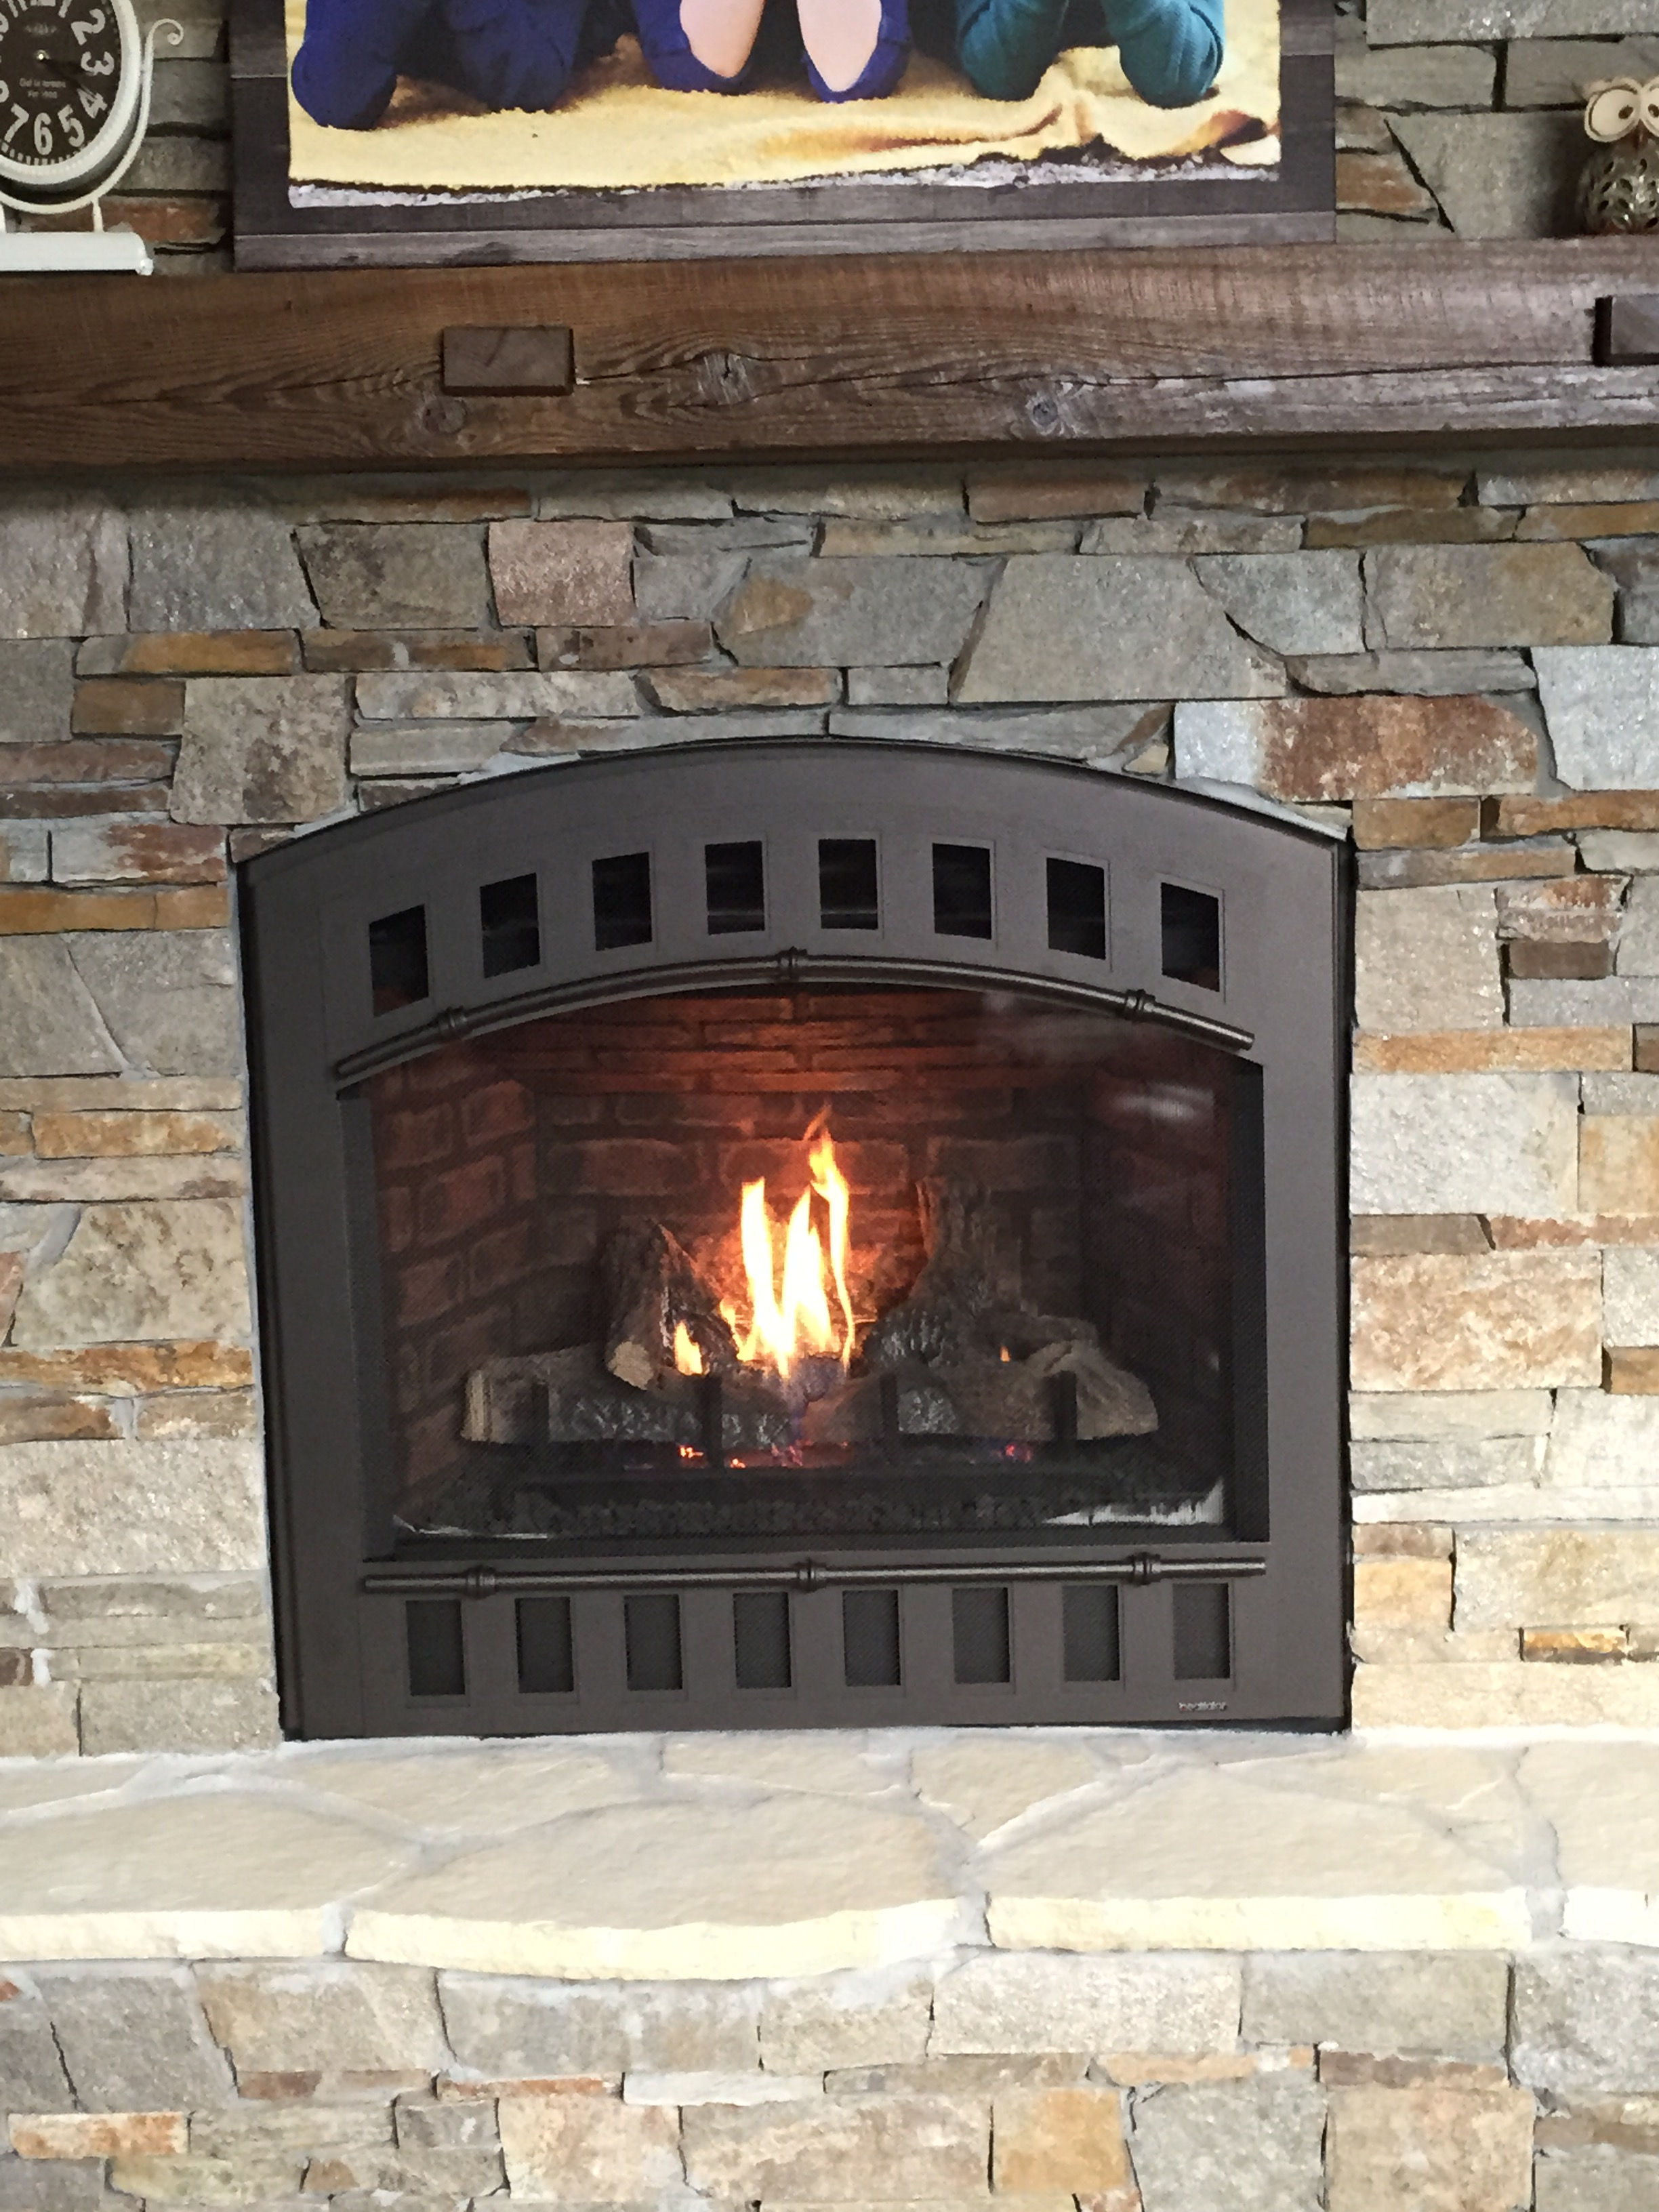 homeowners fireplace after years services where in fireplaces does most can and chimney heatilator service over sale firefly concerns forte is home we tuscon that what photo our az of supplies are the observed have